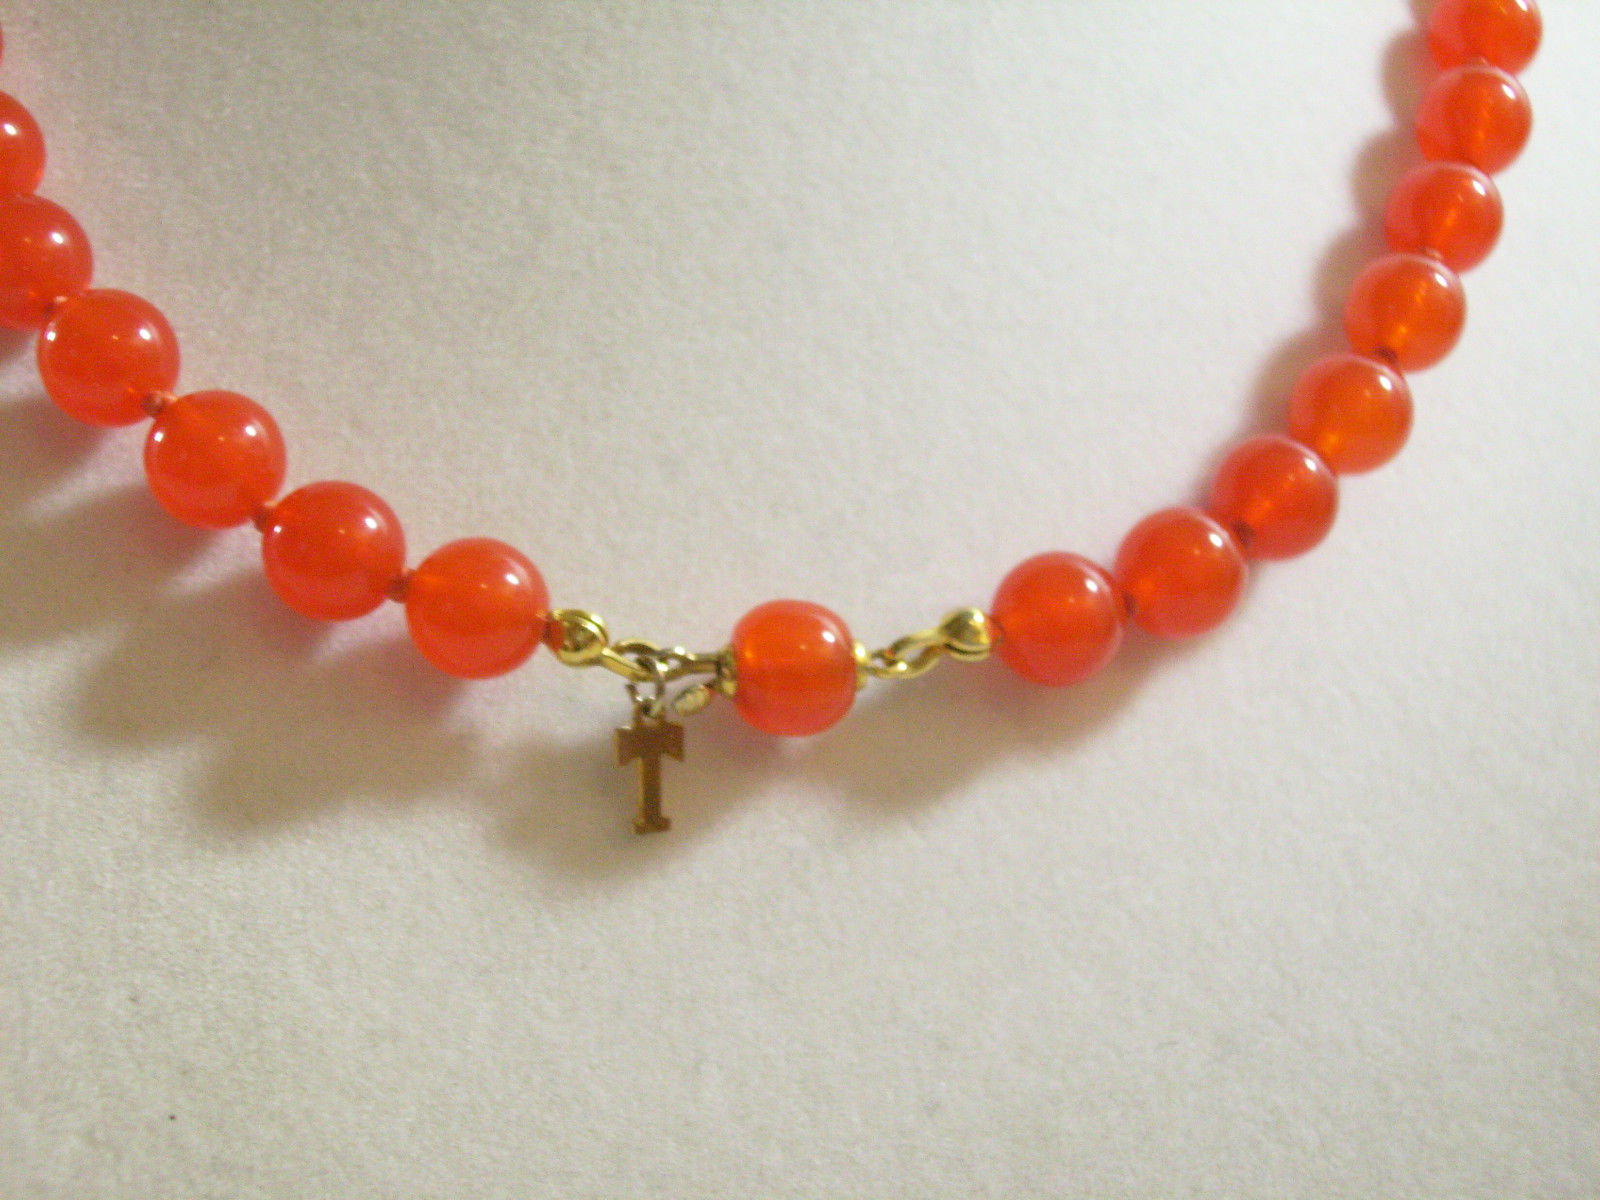 TRIFARI CORAL Color Beads Choker Necklace Hand Knotted Strand Orange Vintage